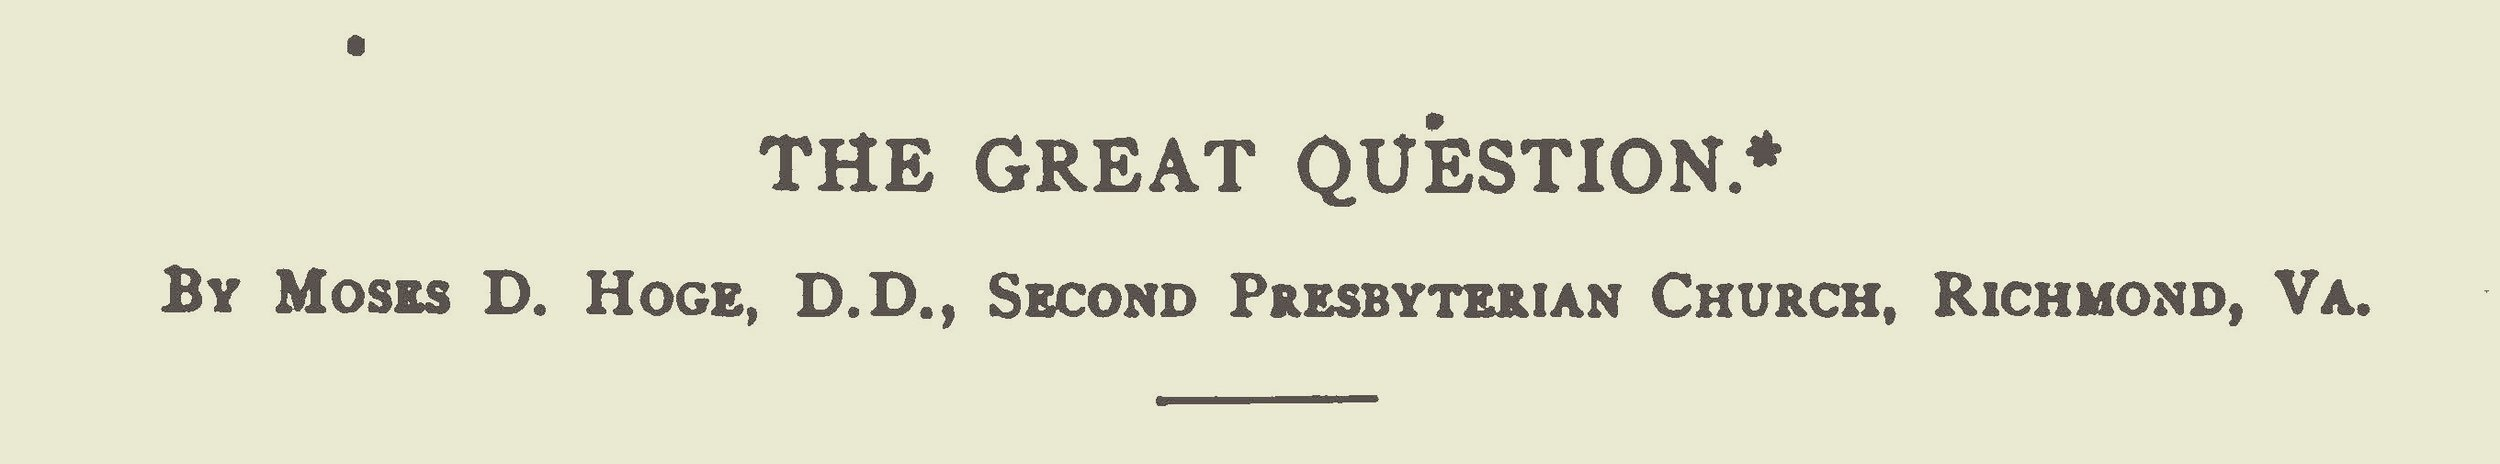 Hoge, Moses Drury, The Great Question Title Page.jpg